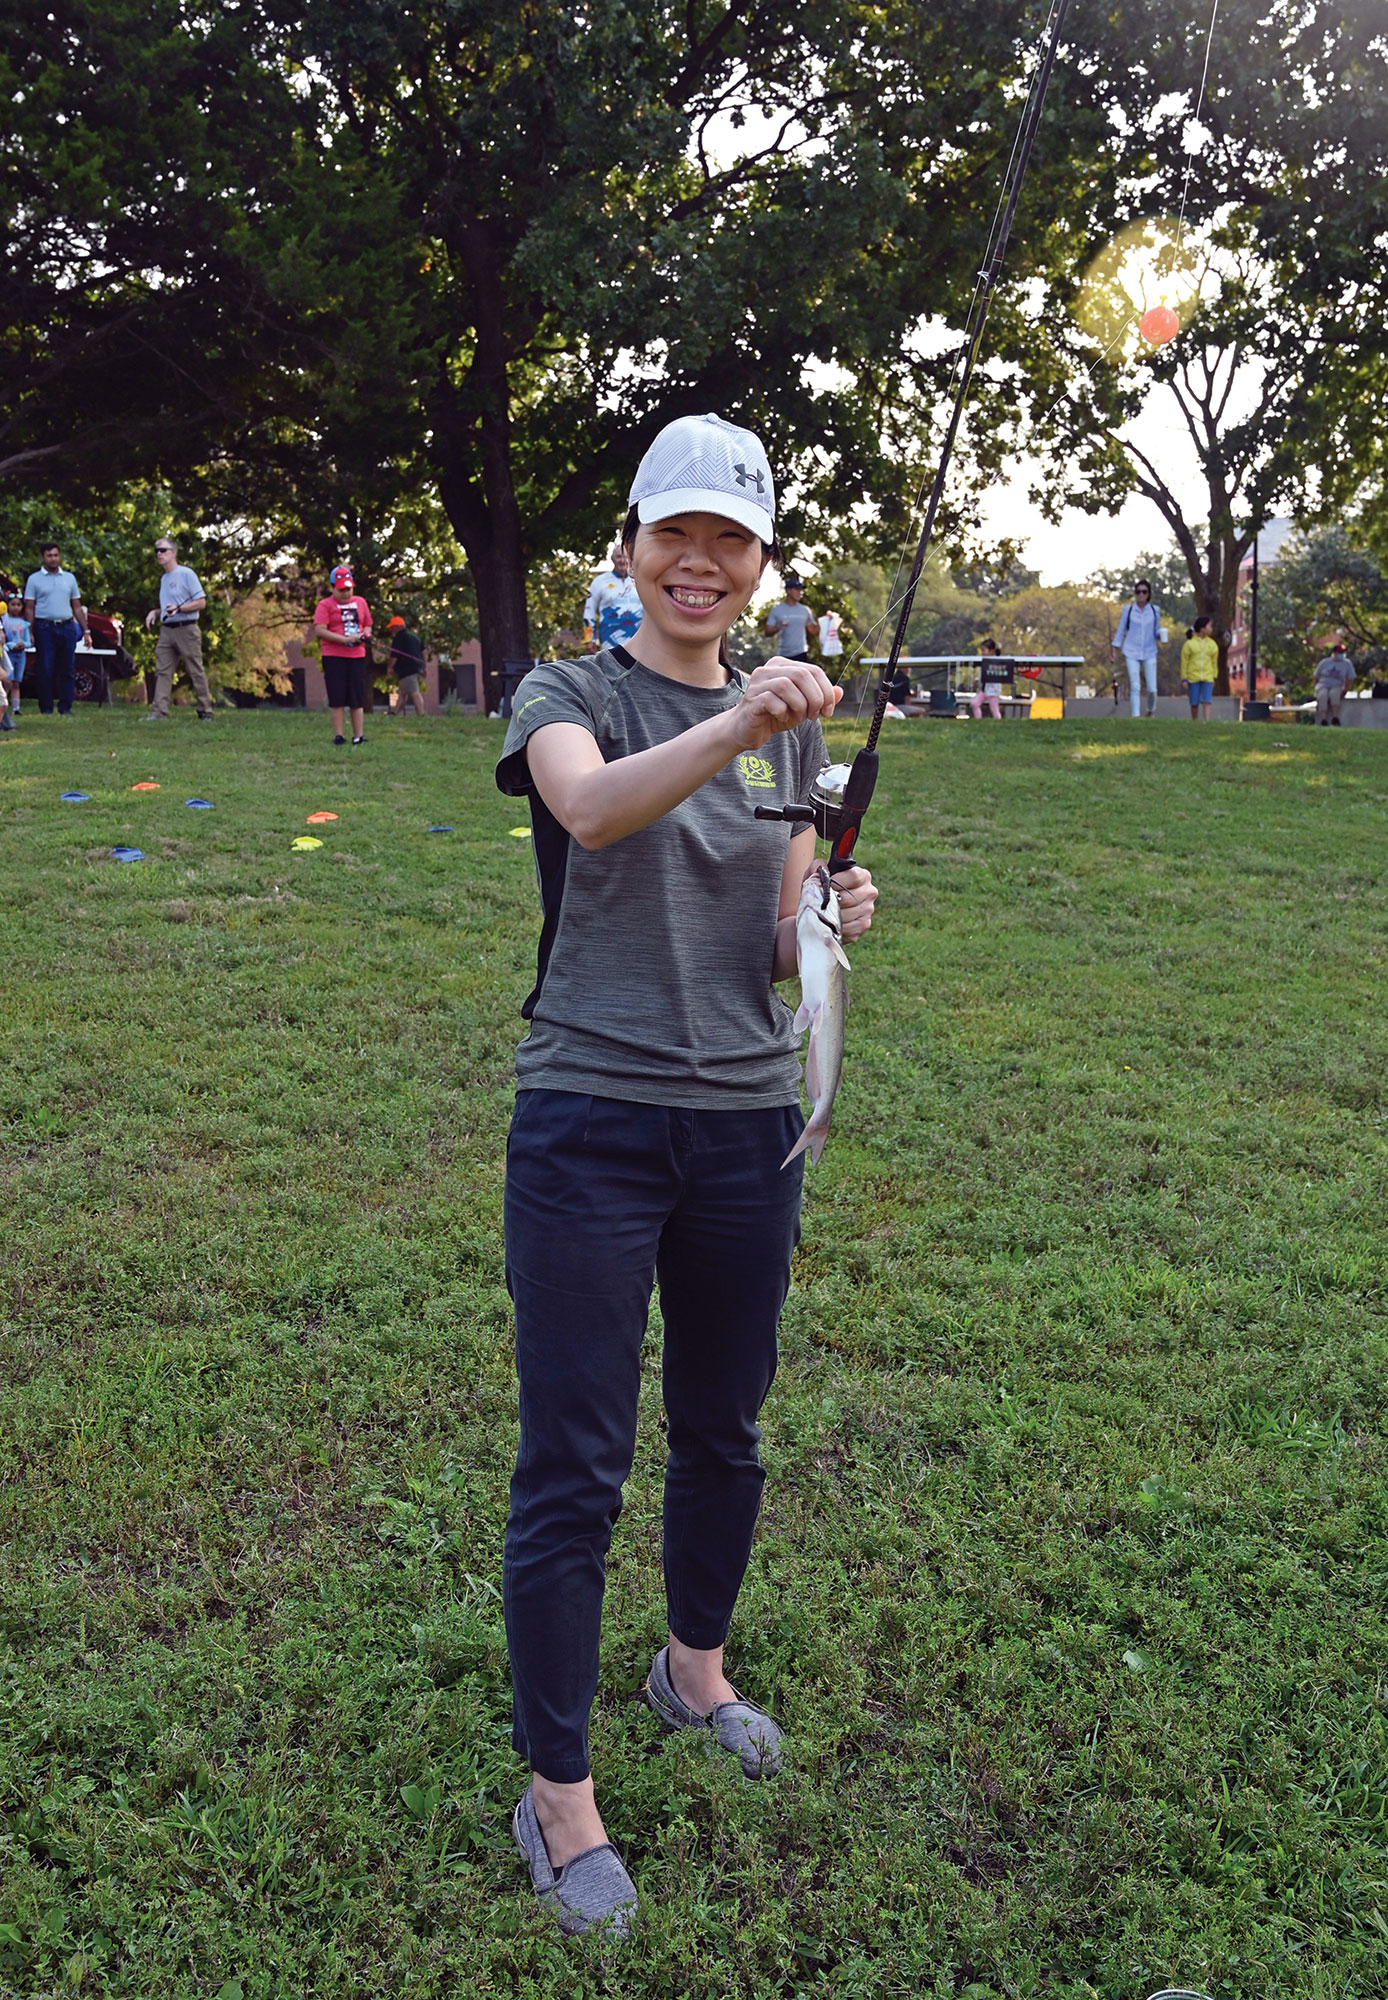 Maj. Yu-yung Chiu, a Taiwanese army officer enrolled in the Command and General Staff Officers Course Class of 2022, shows off the catfish she reeled in during the International Family Fishing Derby Sept. 11 at Merritt Lake.